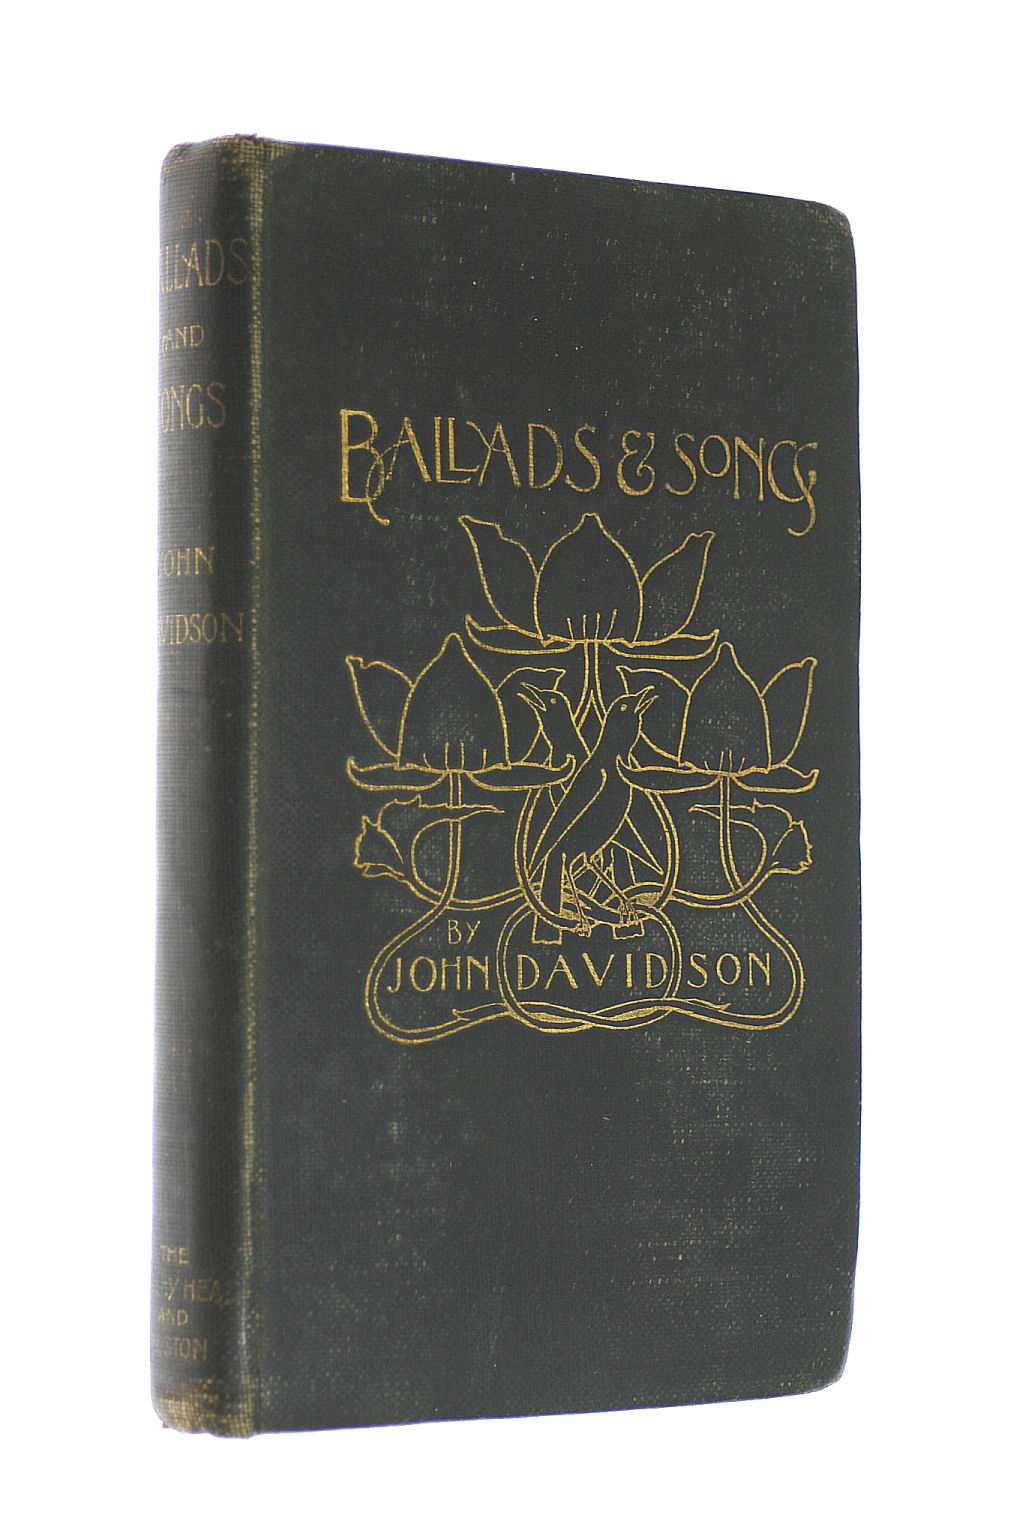 Image for Ballads And Songs.